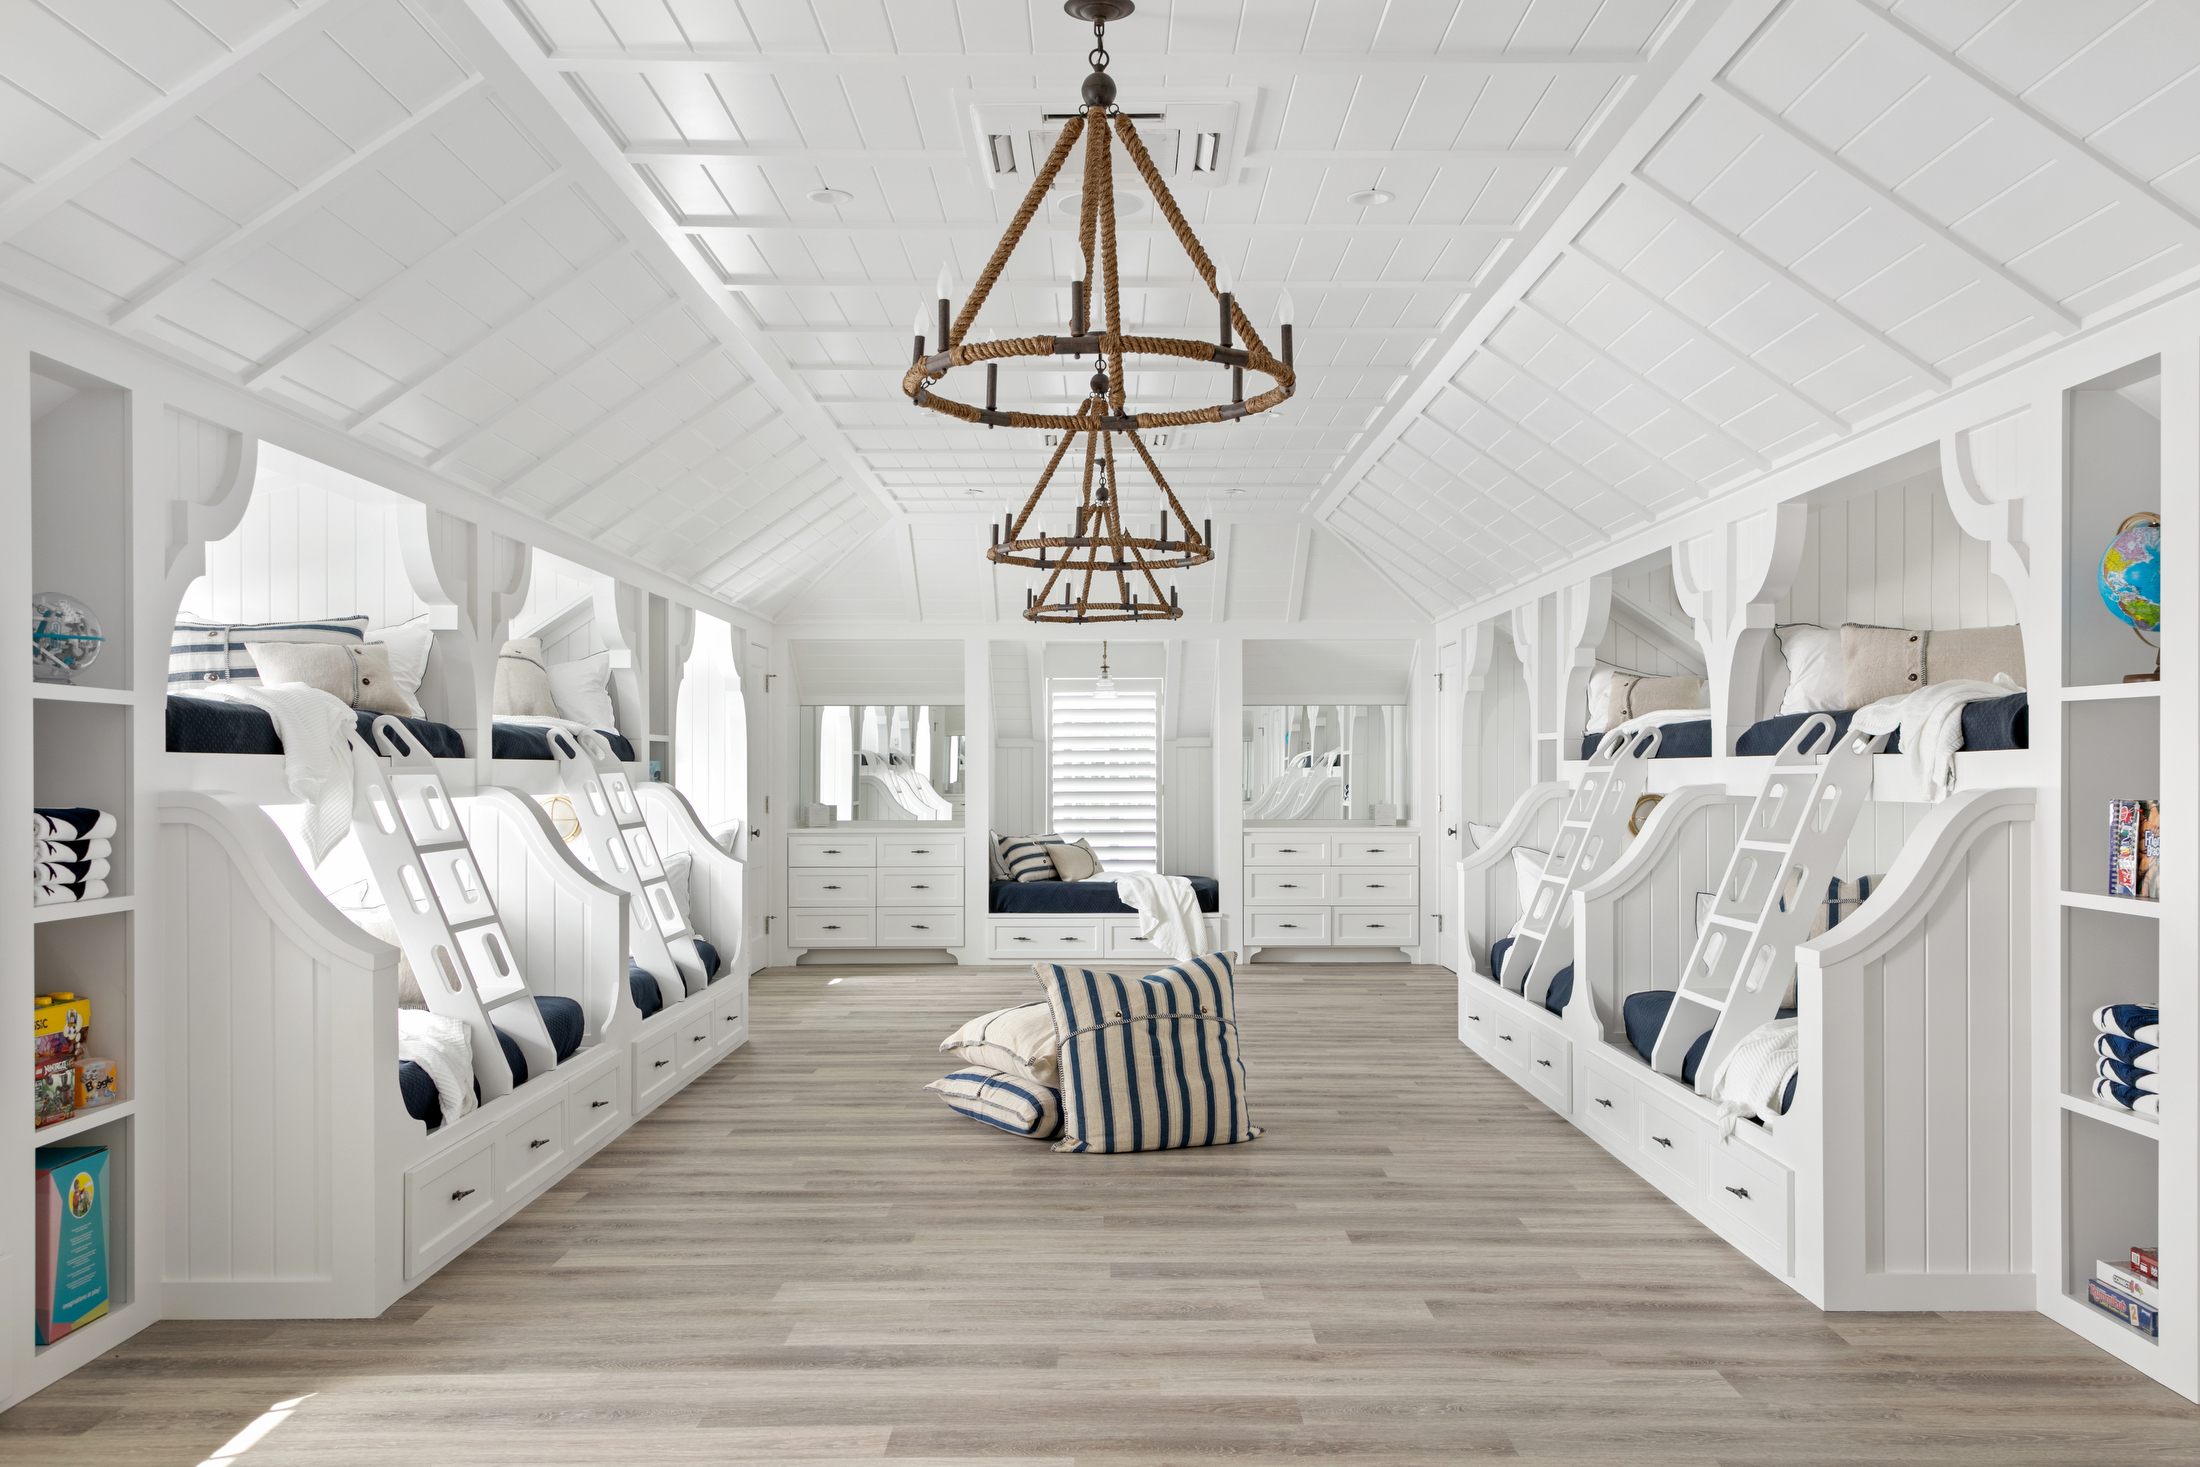 Kids' bunk bed room and play room in white and navy